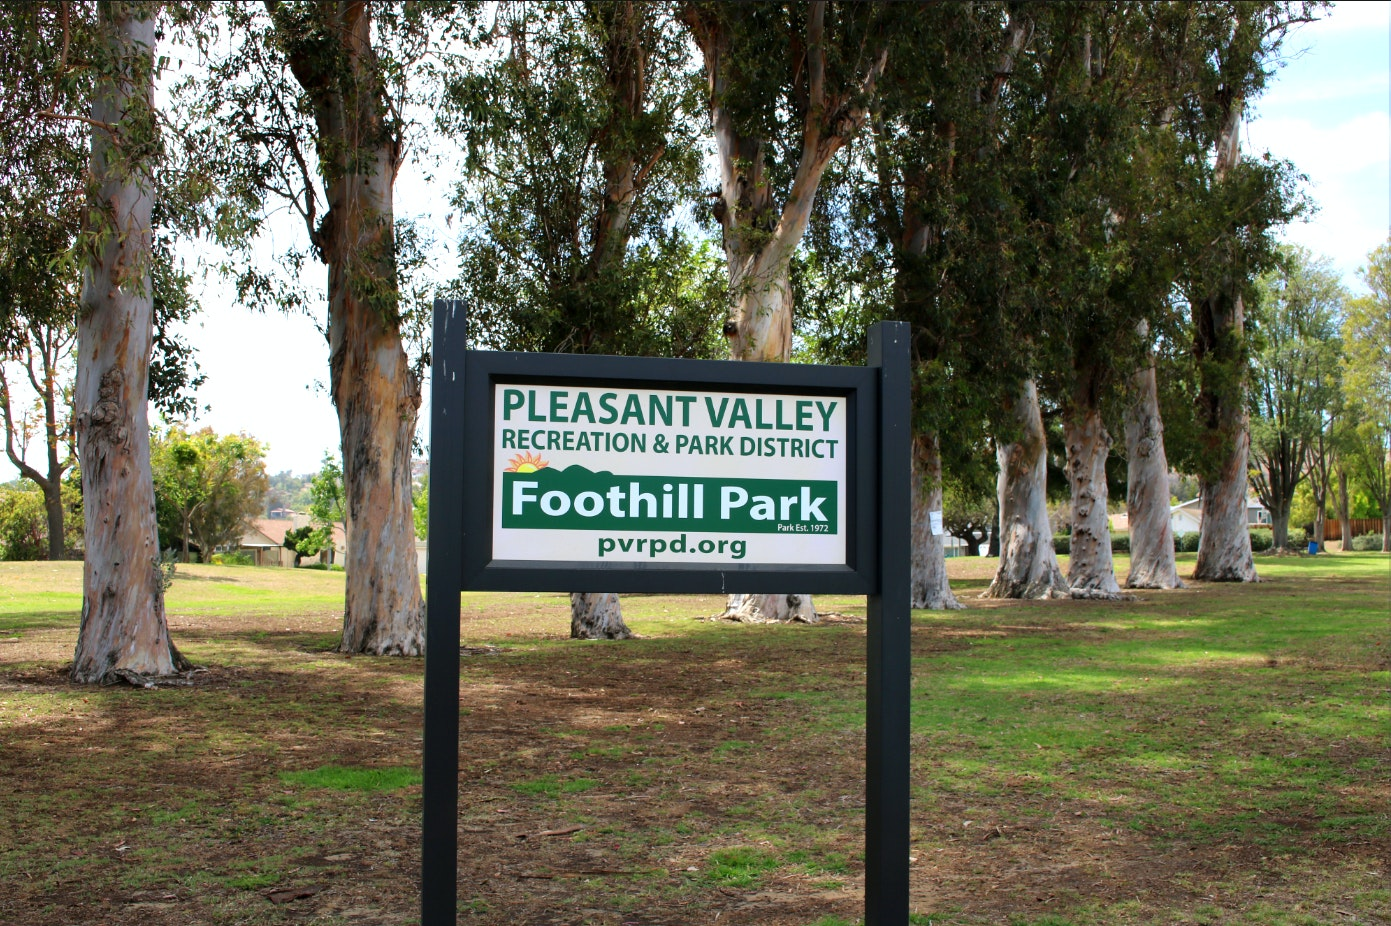 Foothill Park